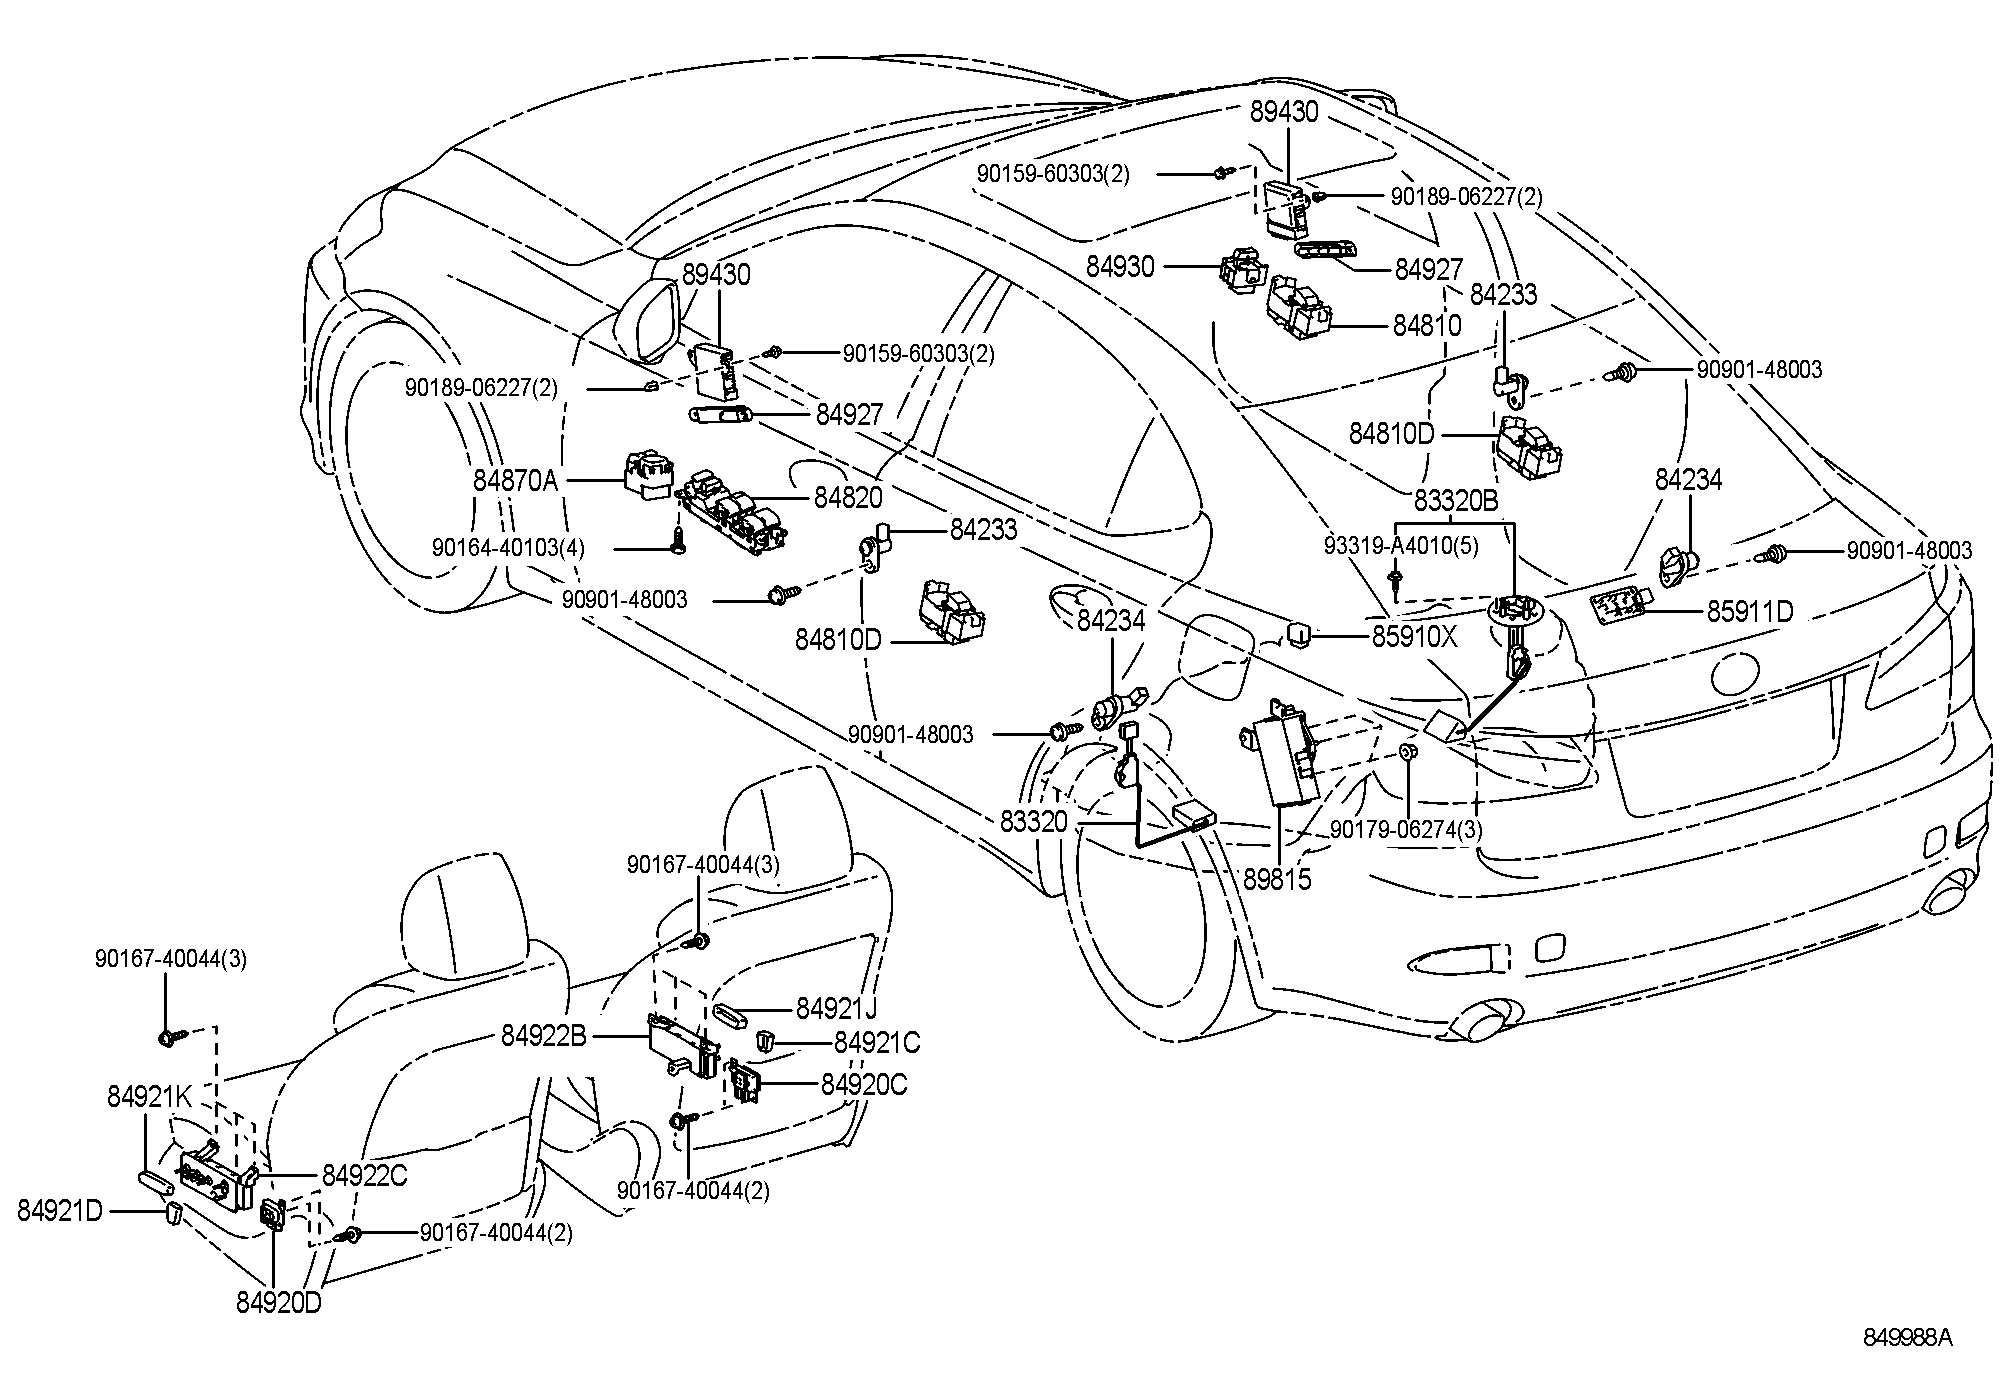 06 Lexus Gs300 Fuse Box Diagram. Lexus. Auto Fuse Box Diagram